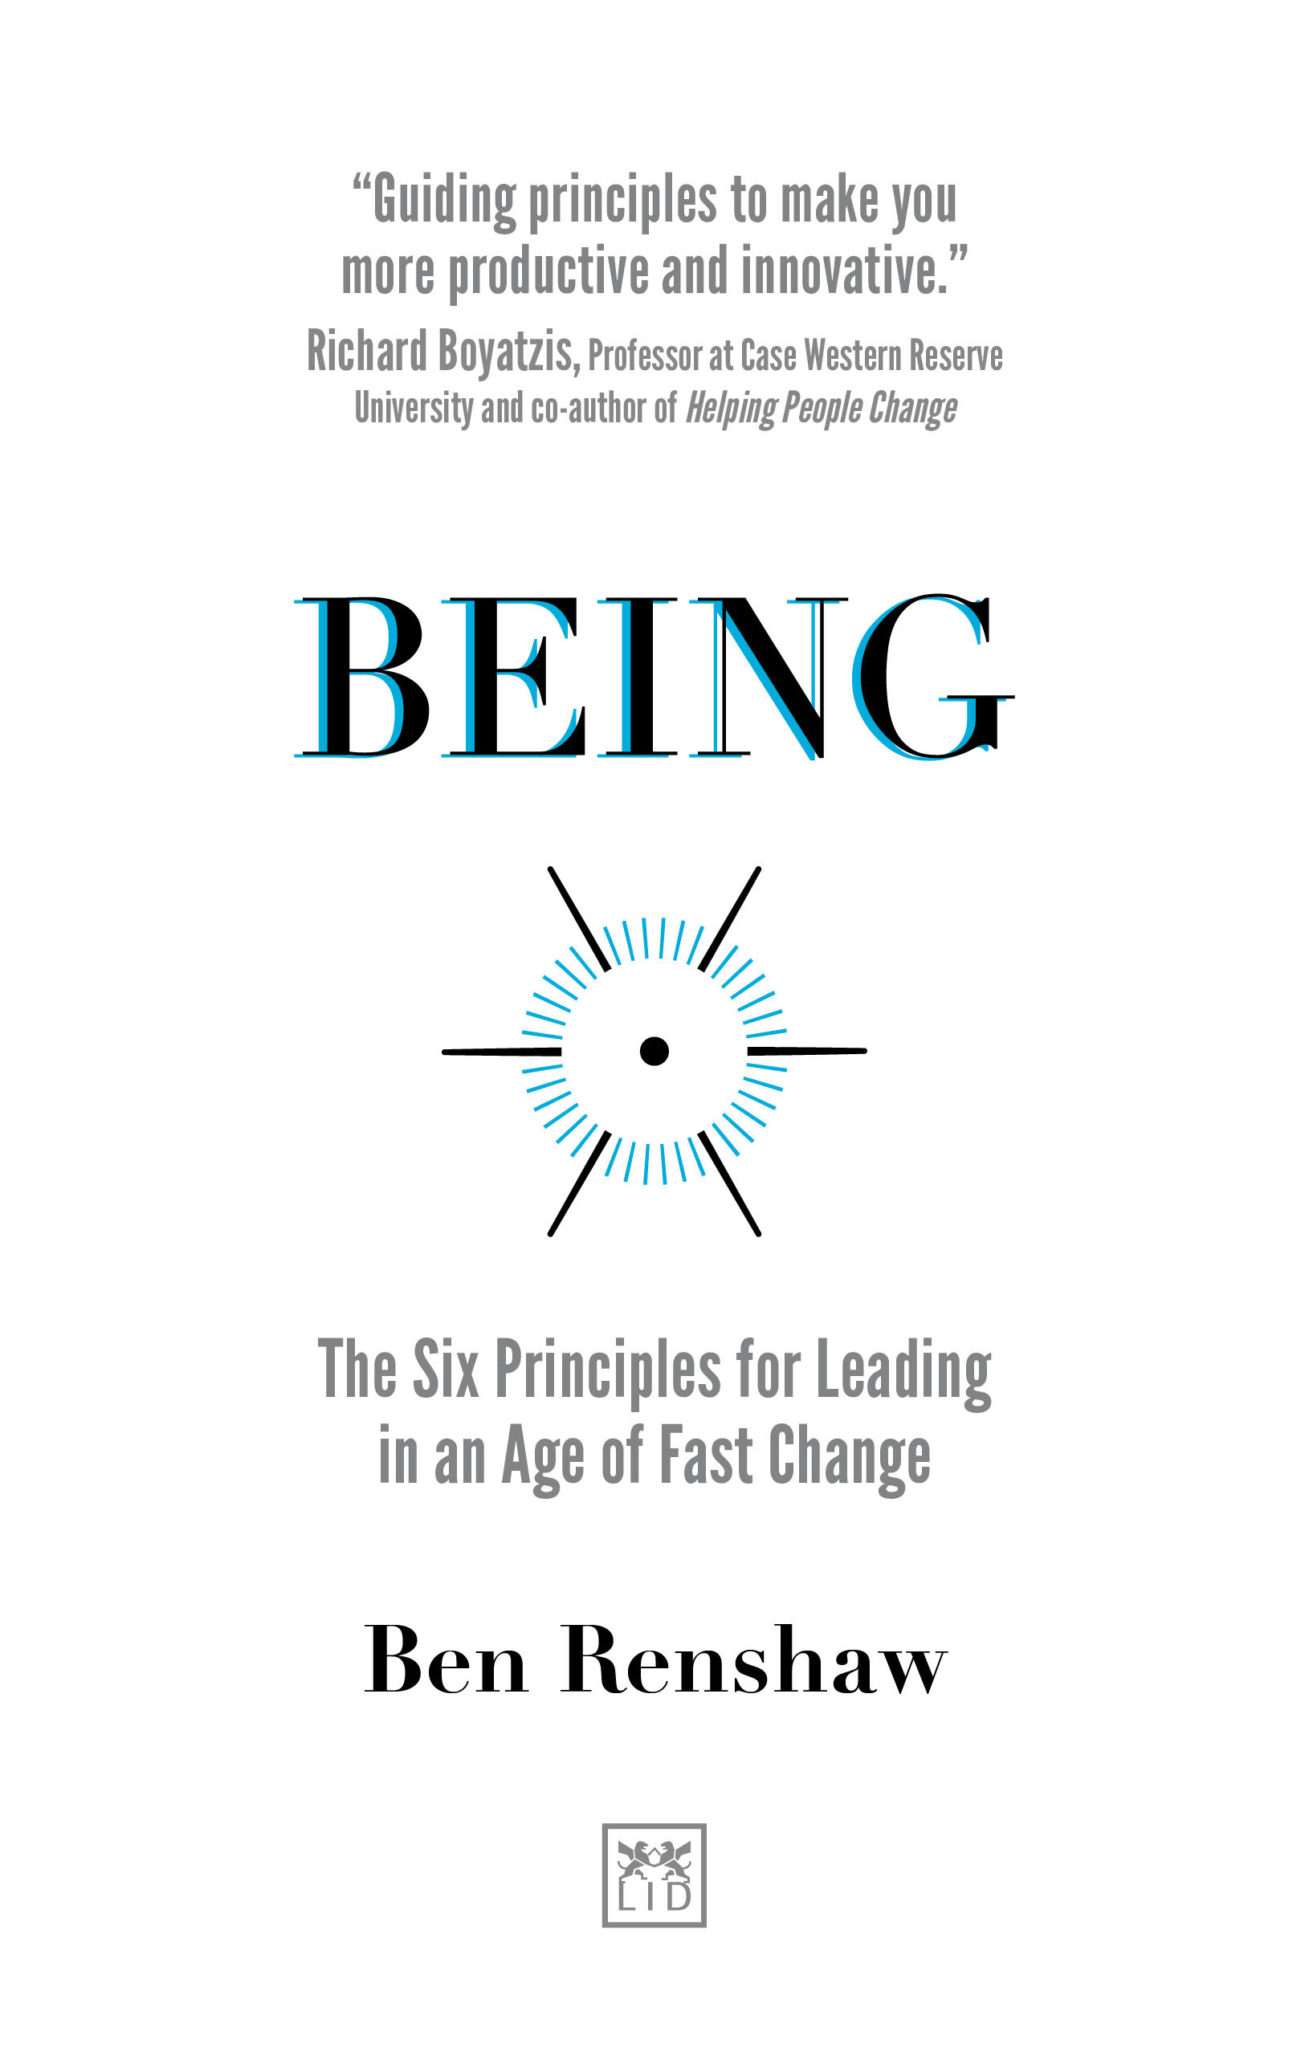 Ben Renshaw Book 'Being'